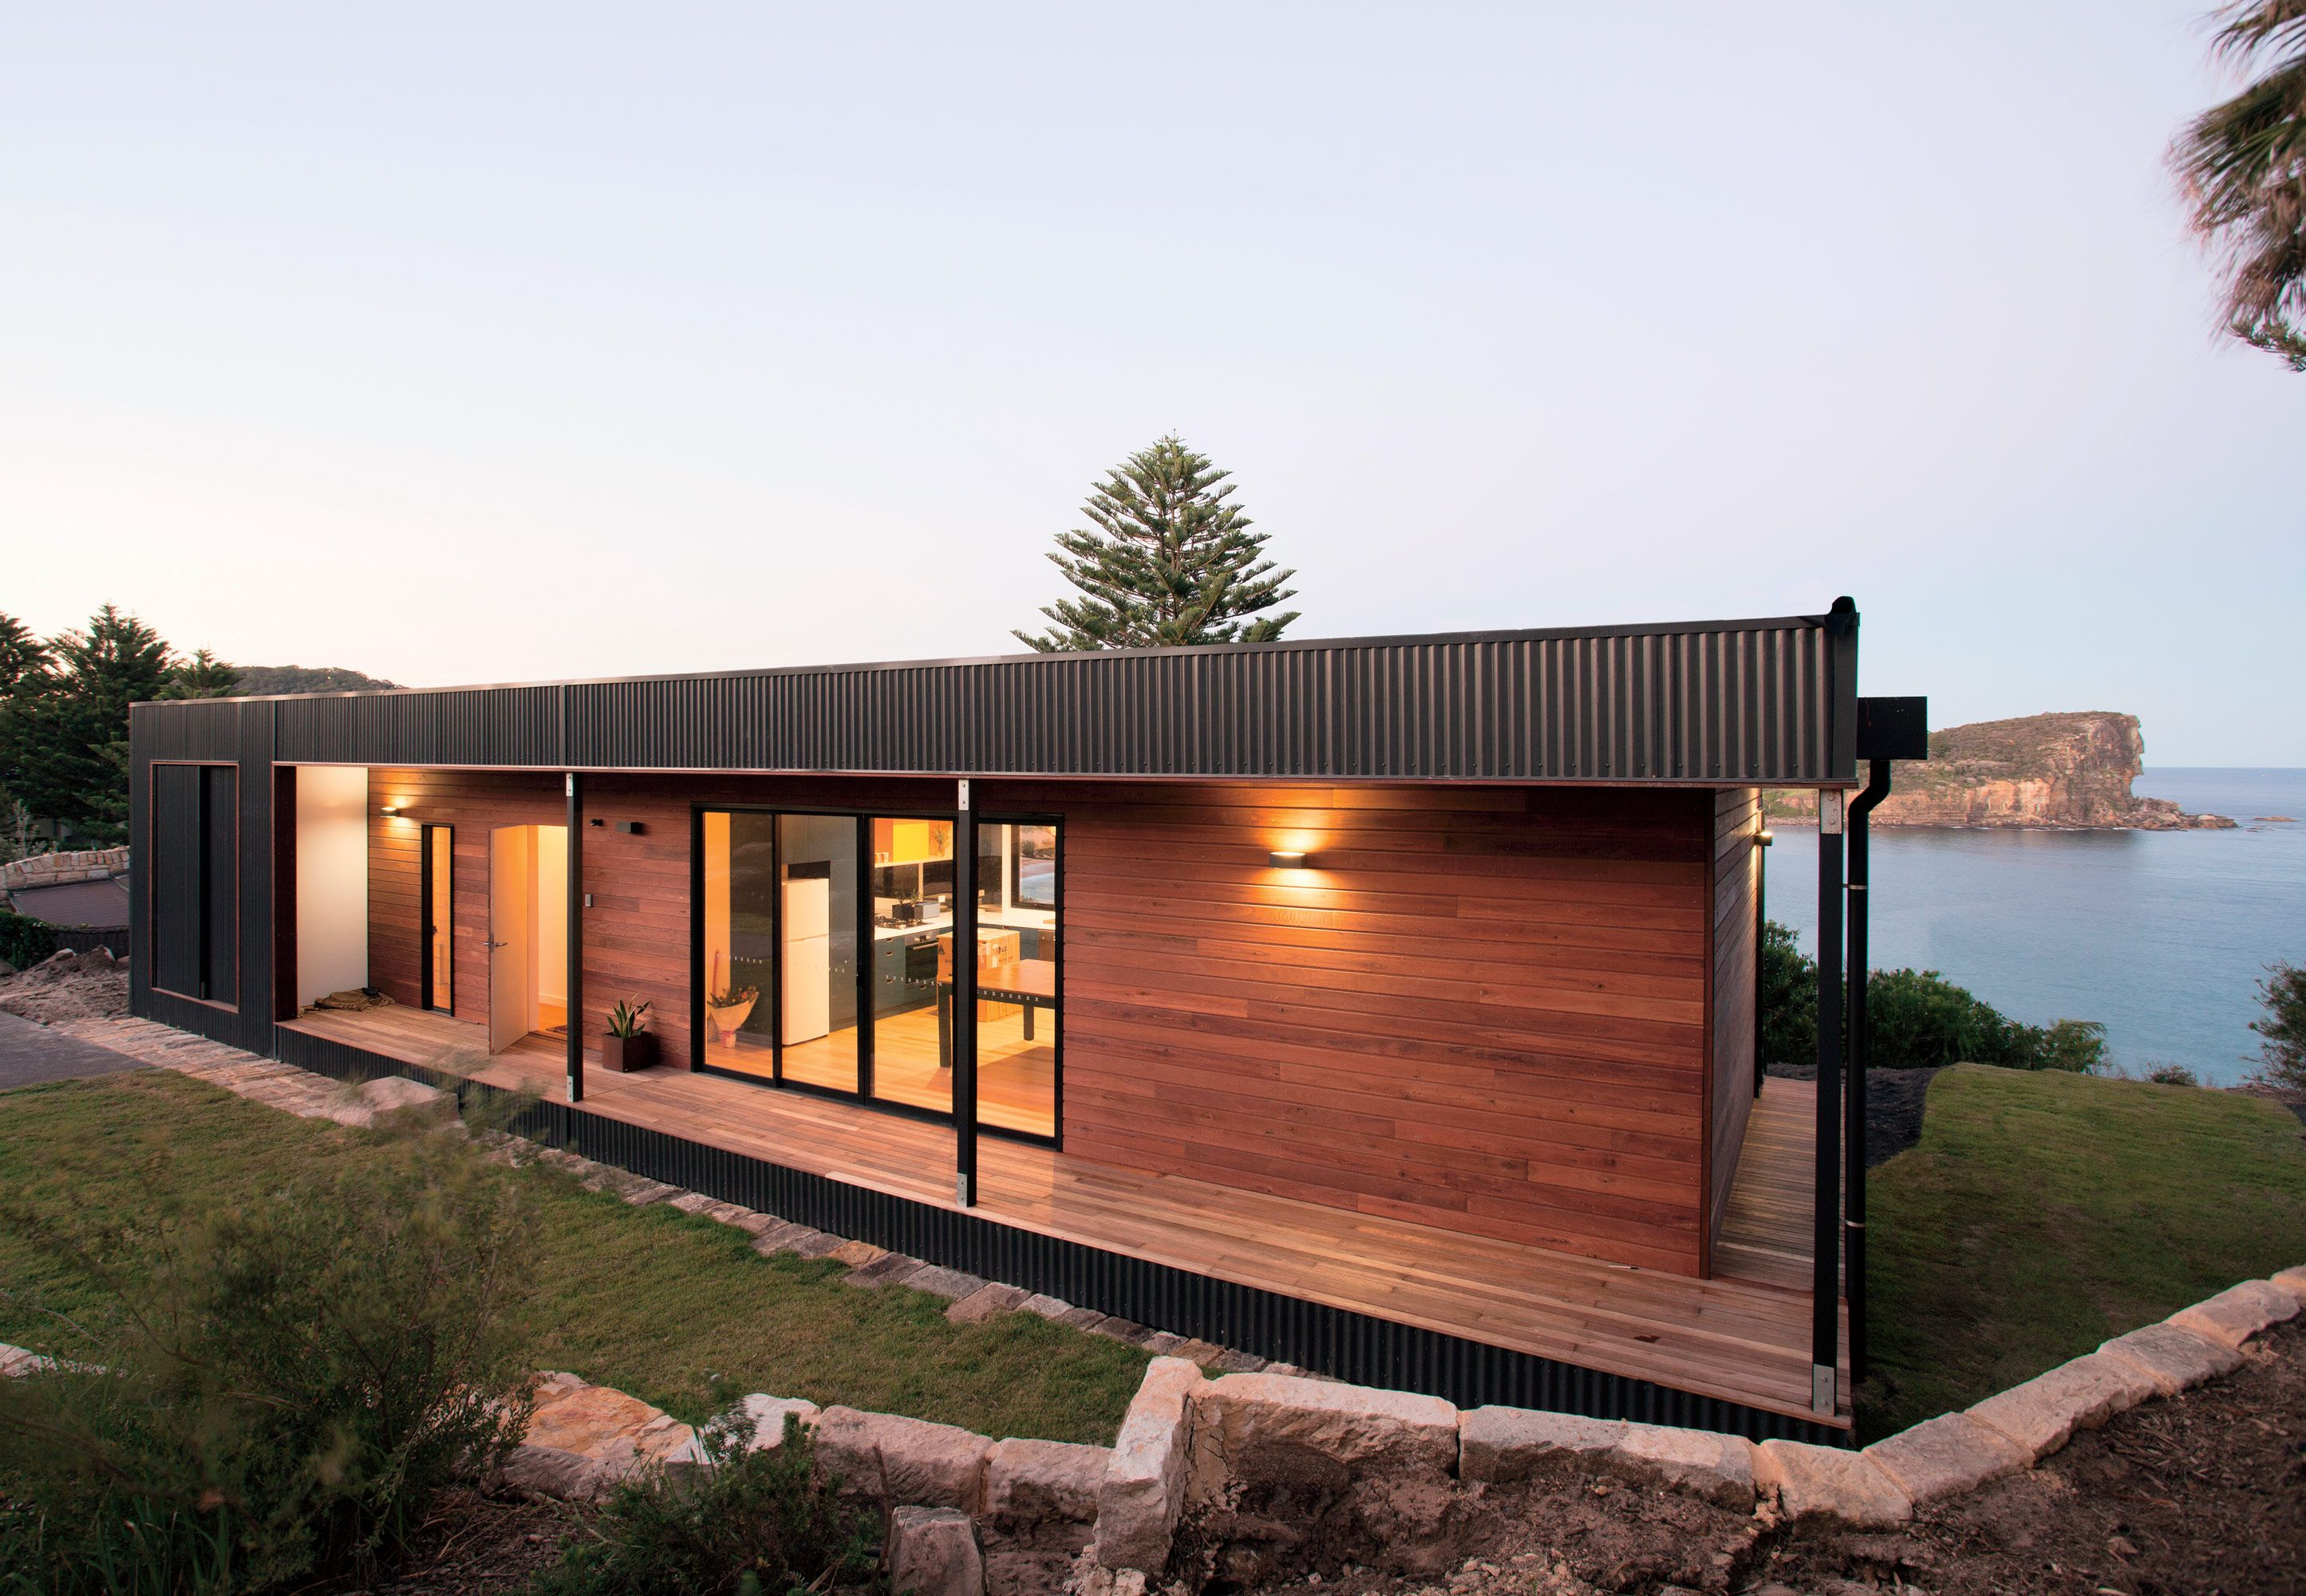 Exterior materials modern beachside prefab home in australia by archiblox with colorbond ultra steel and queensland blue gum wood claddingon the facade